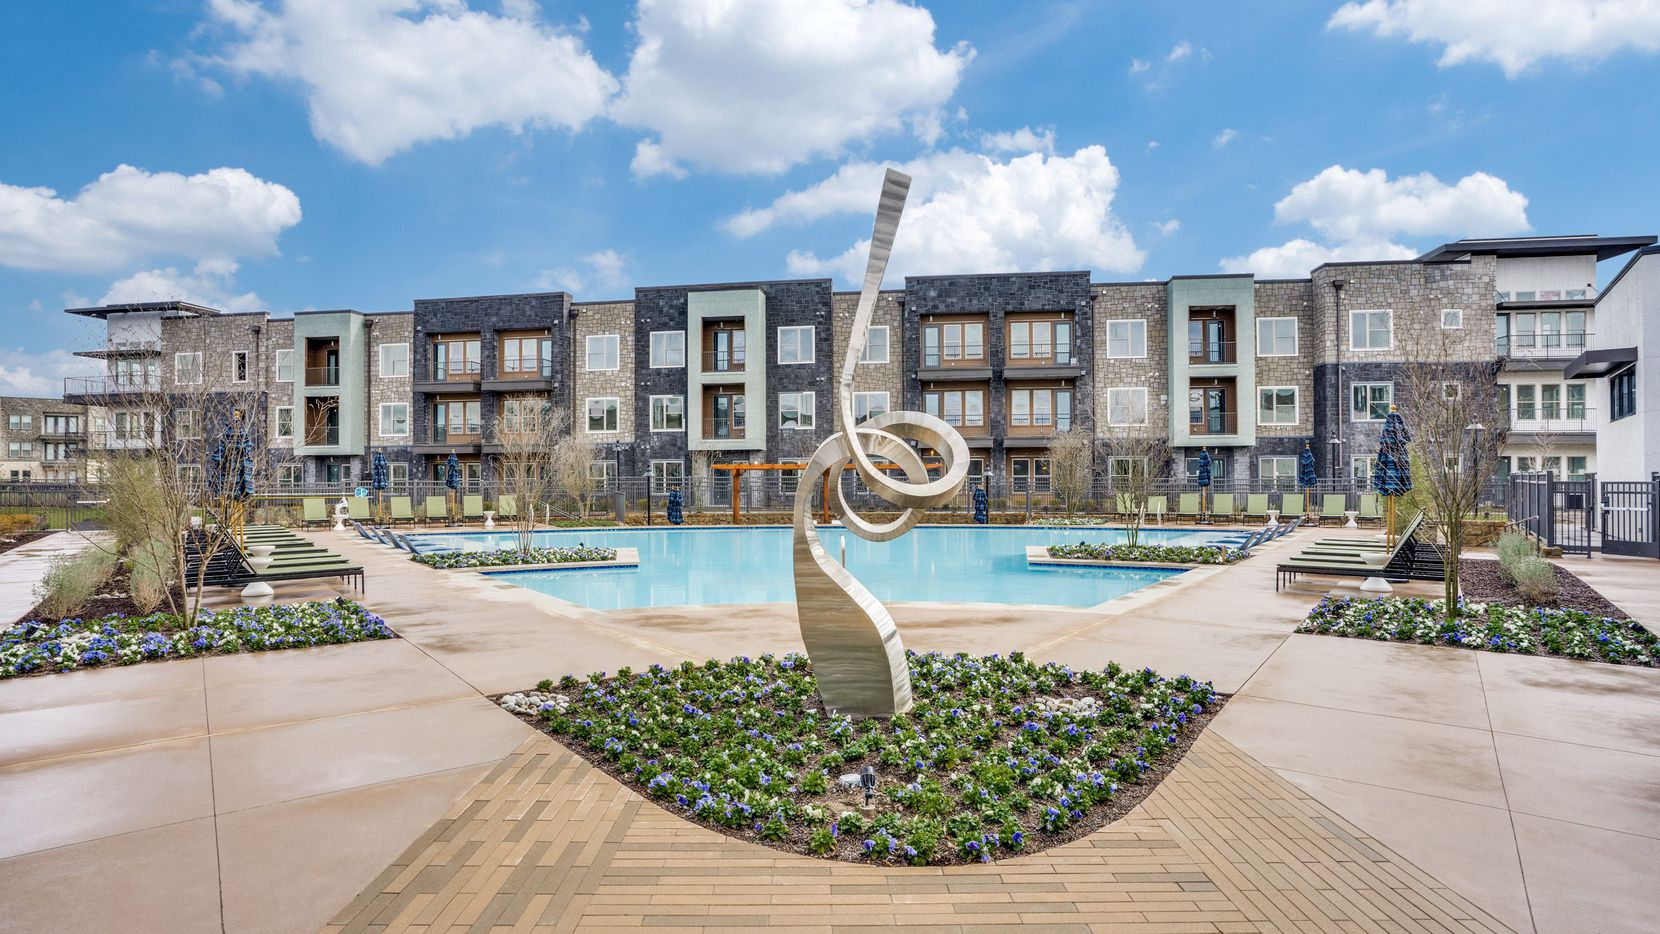 The Jefferson 1900 apartments in Farmers Branch were included in the sale.